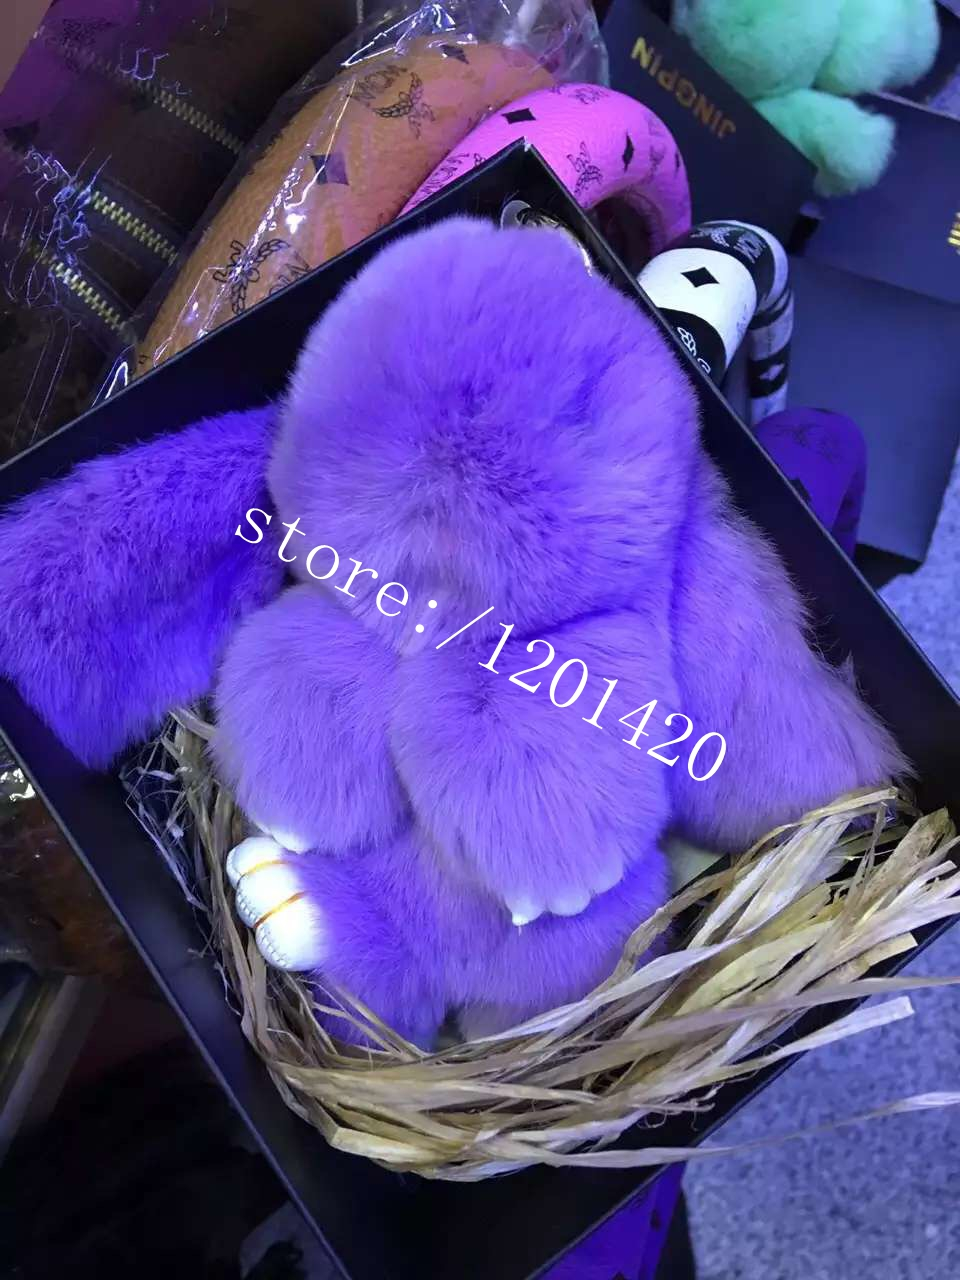 Luxury Bunny fur charm 100% Real Genuine Rex Rabbit Fur Keychains Pendant Bag Charm Bunny  Doll Handbag Backpack Keyring charm